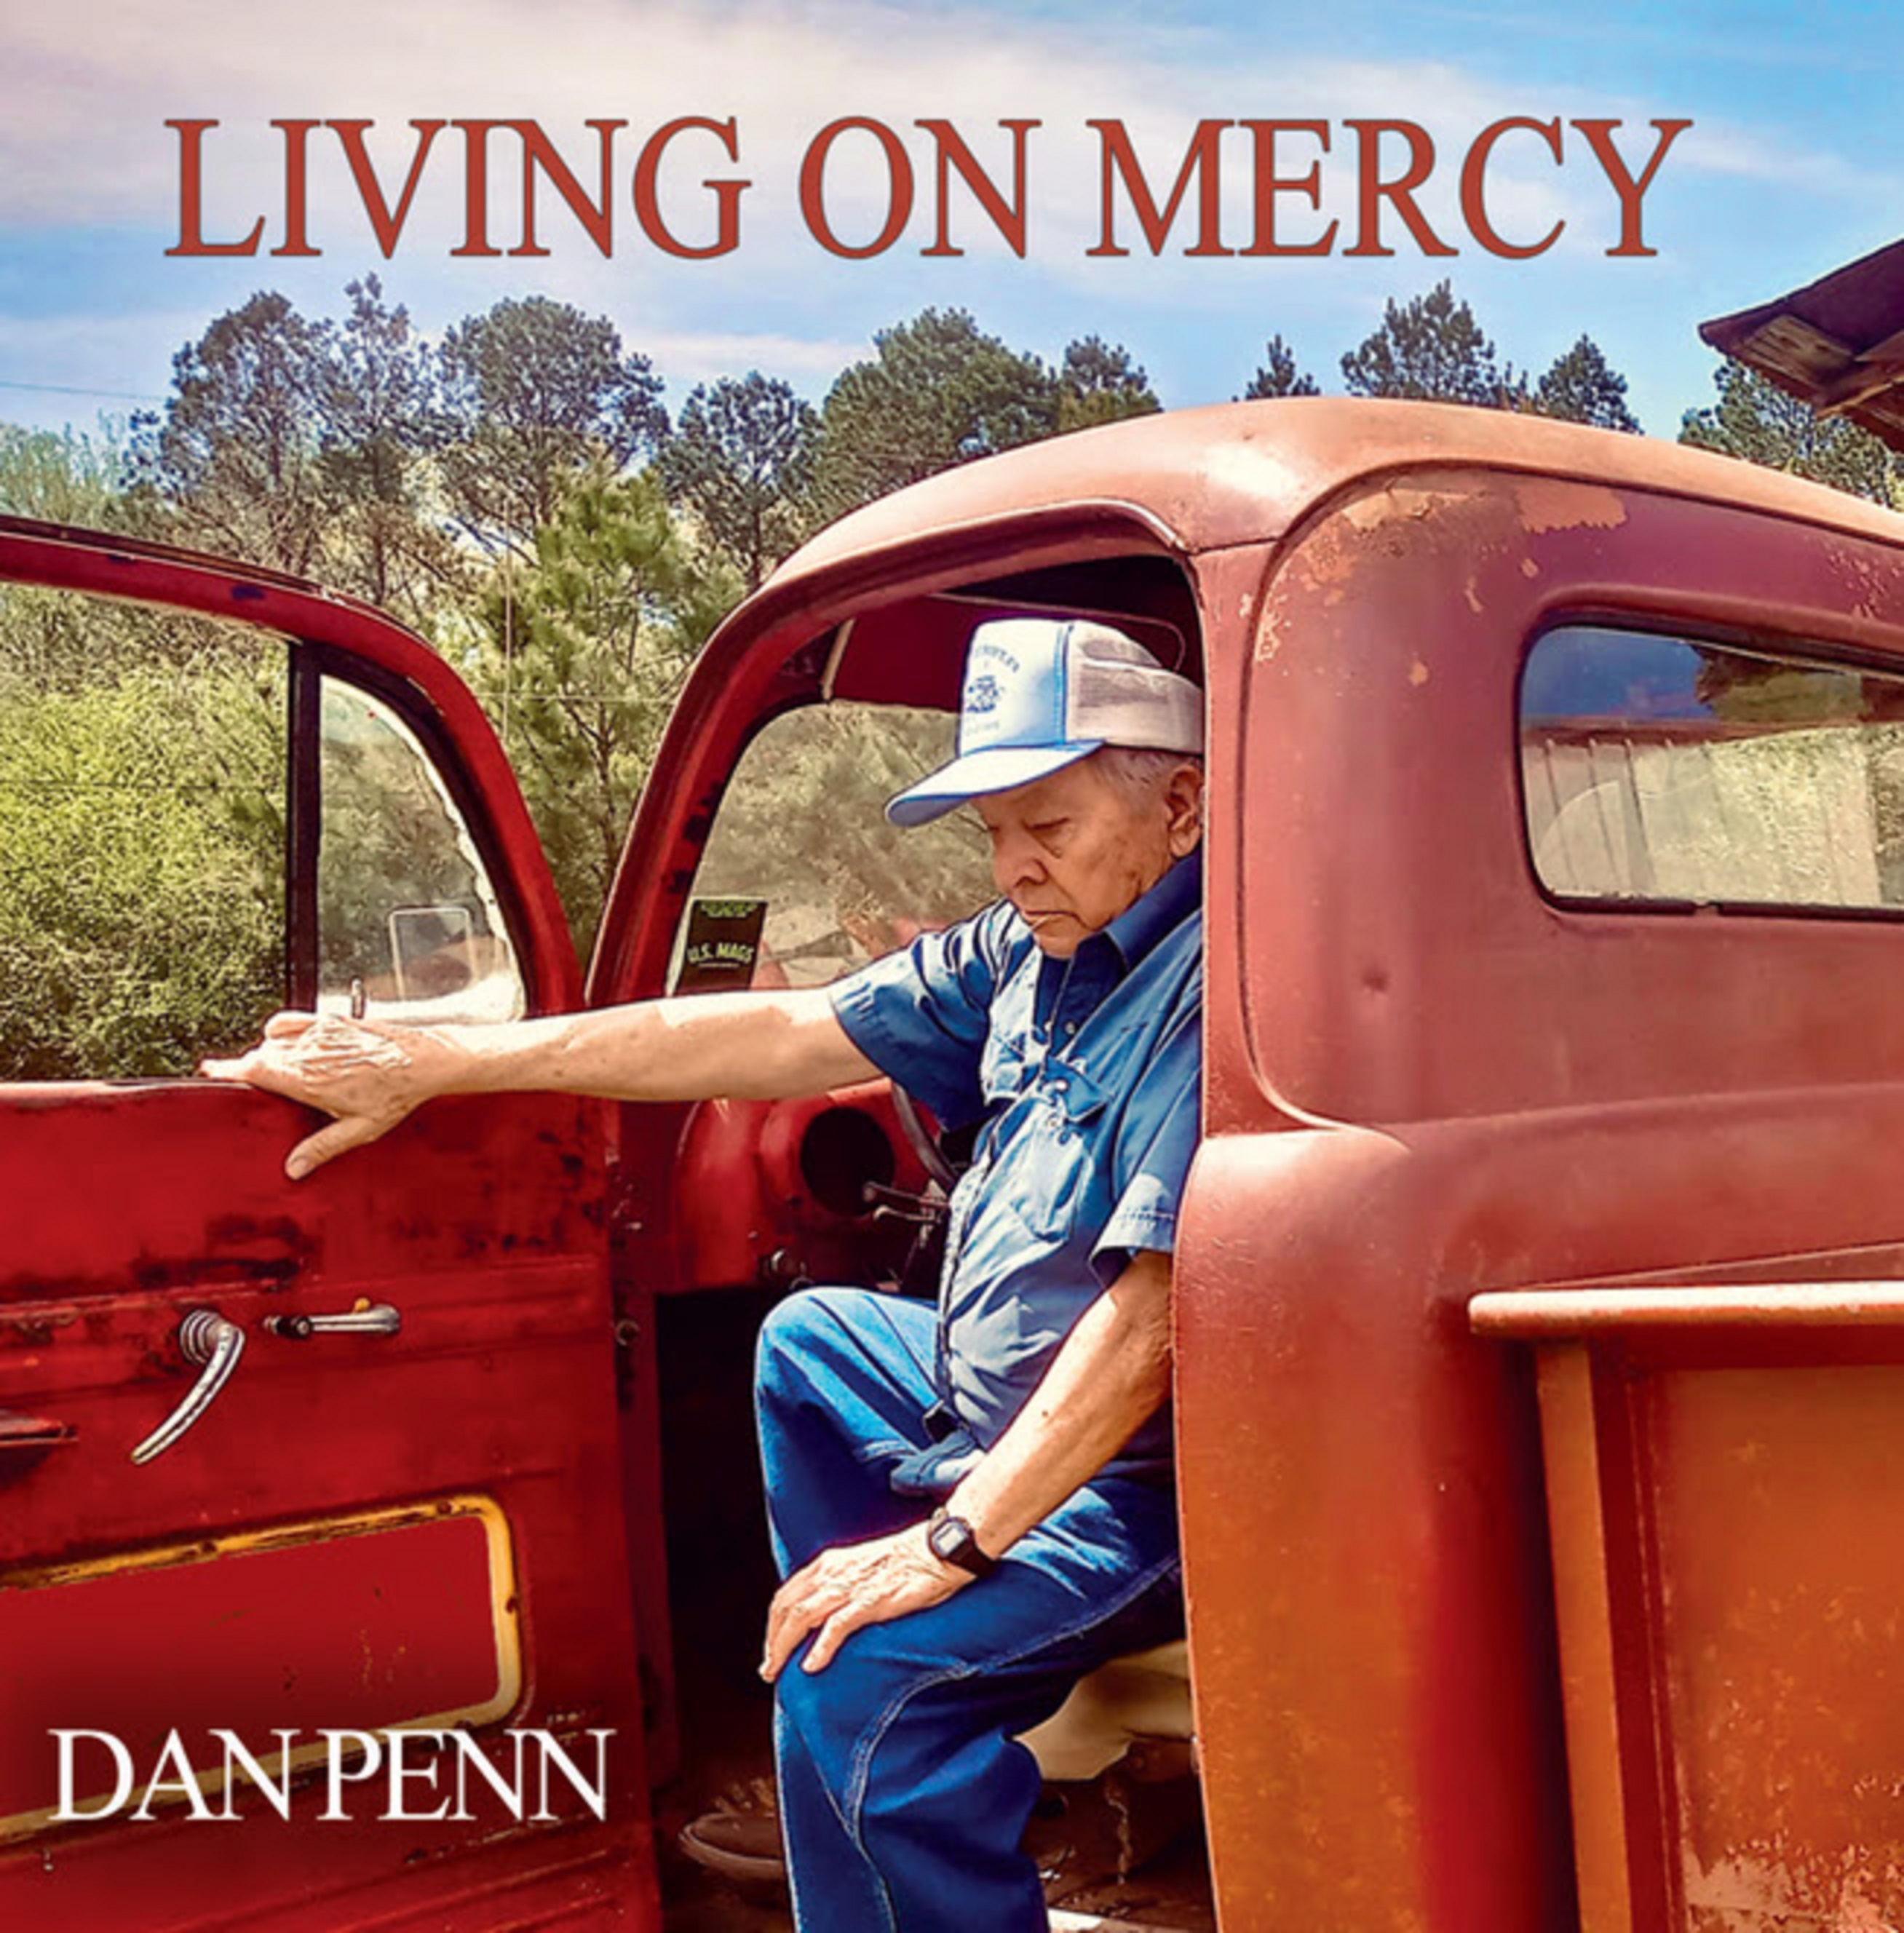 Dan Penn's new album 'Living On Mercy' due out Aug. 28th